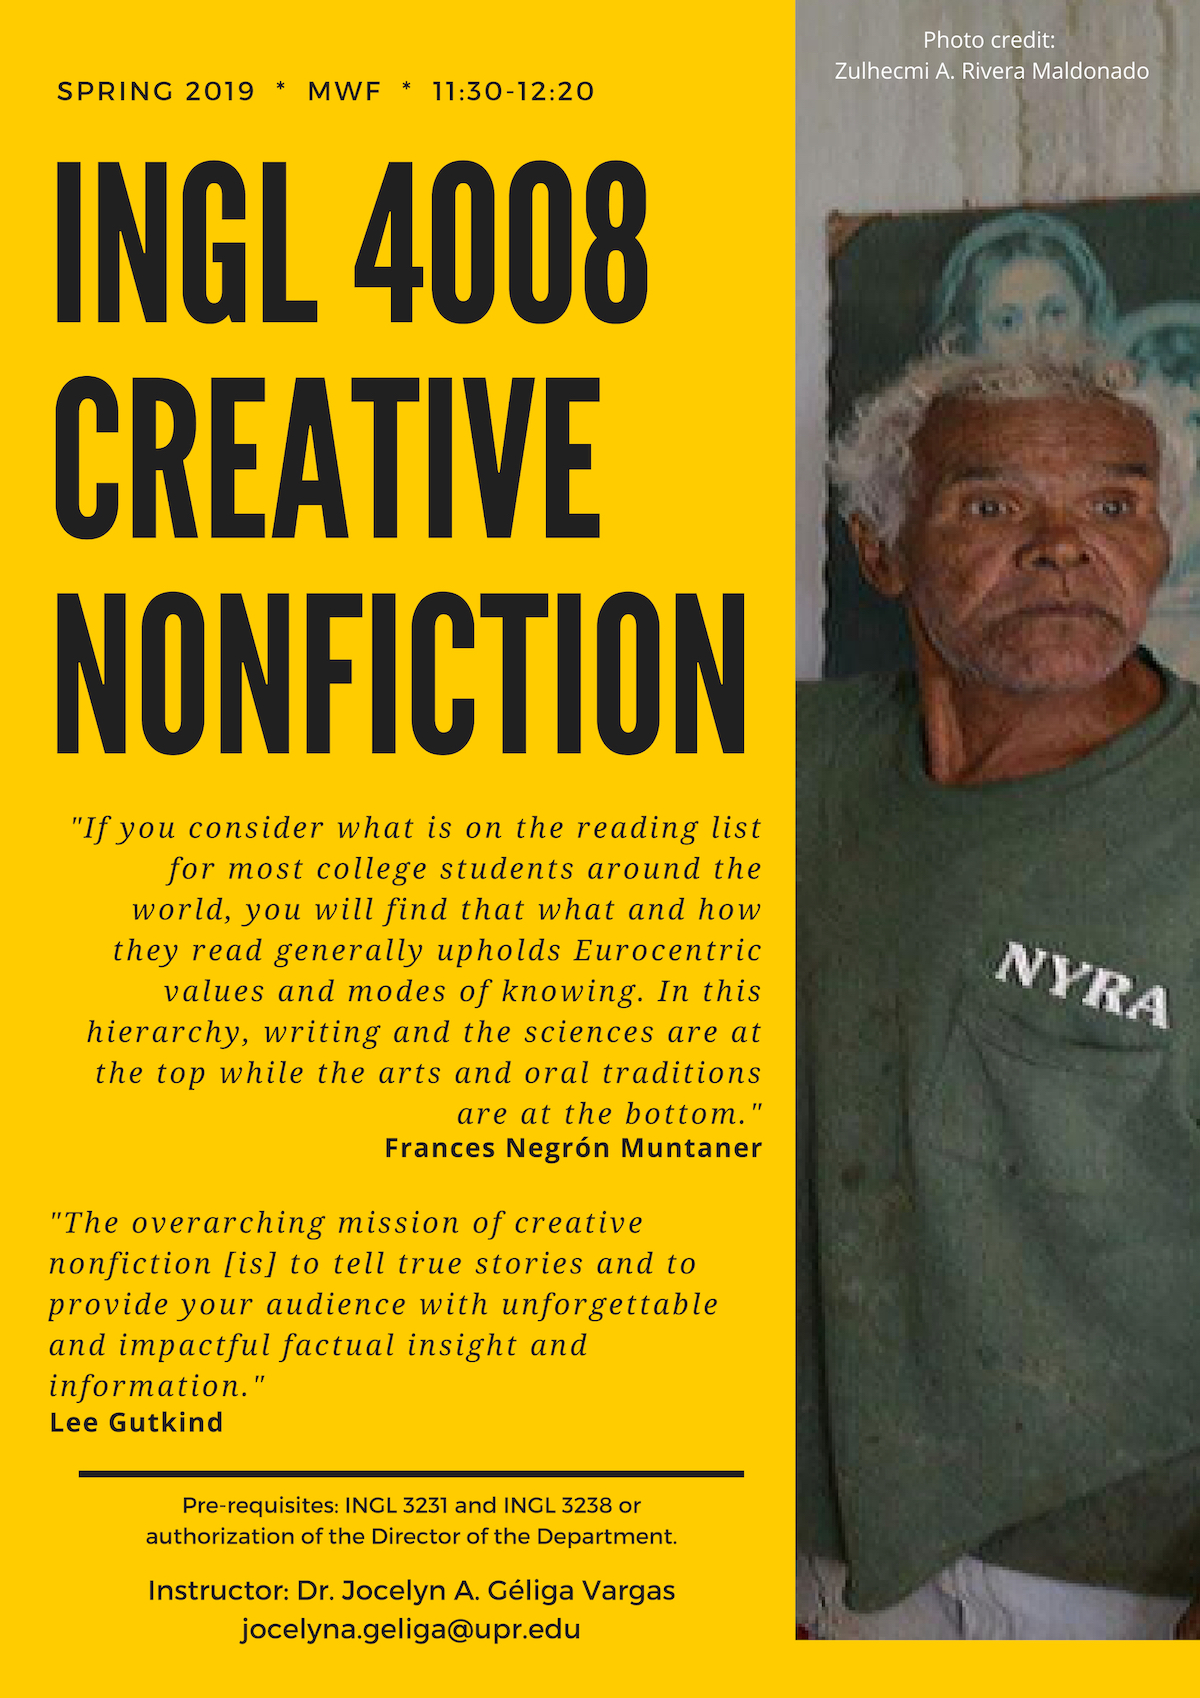 [Course Promo] INGL 4008: Creative Nonfiction Writing